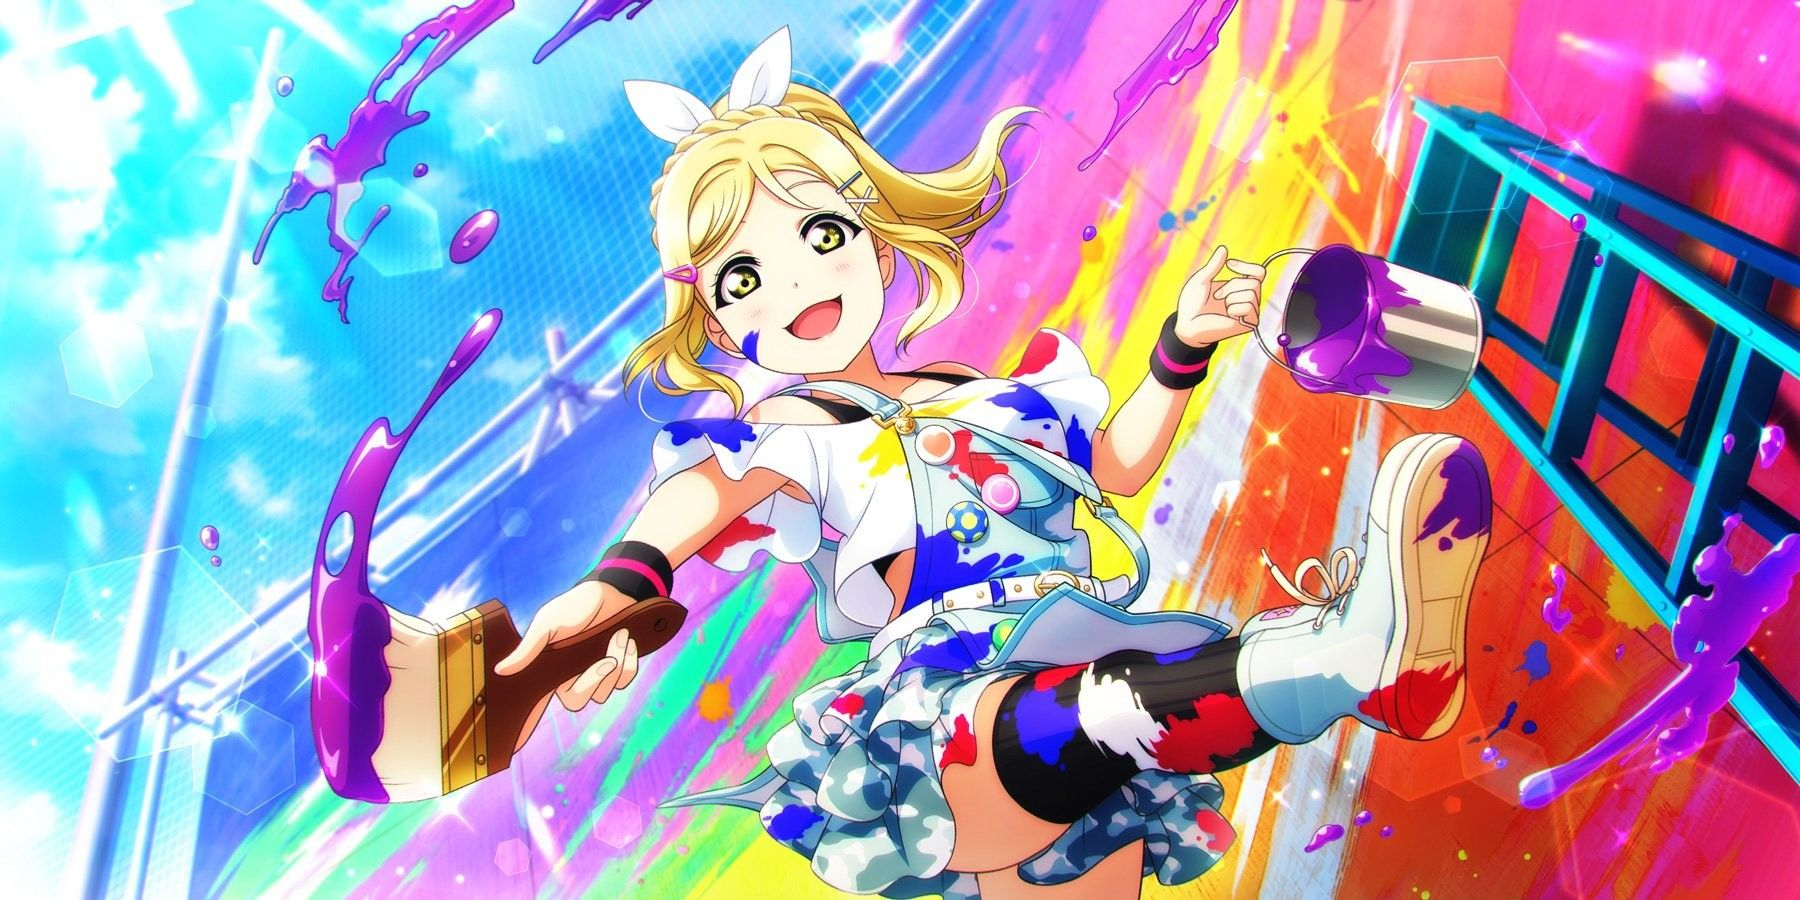 Pin by Jaasumida on Love Live in 2020 Anime art girl